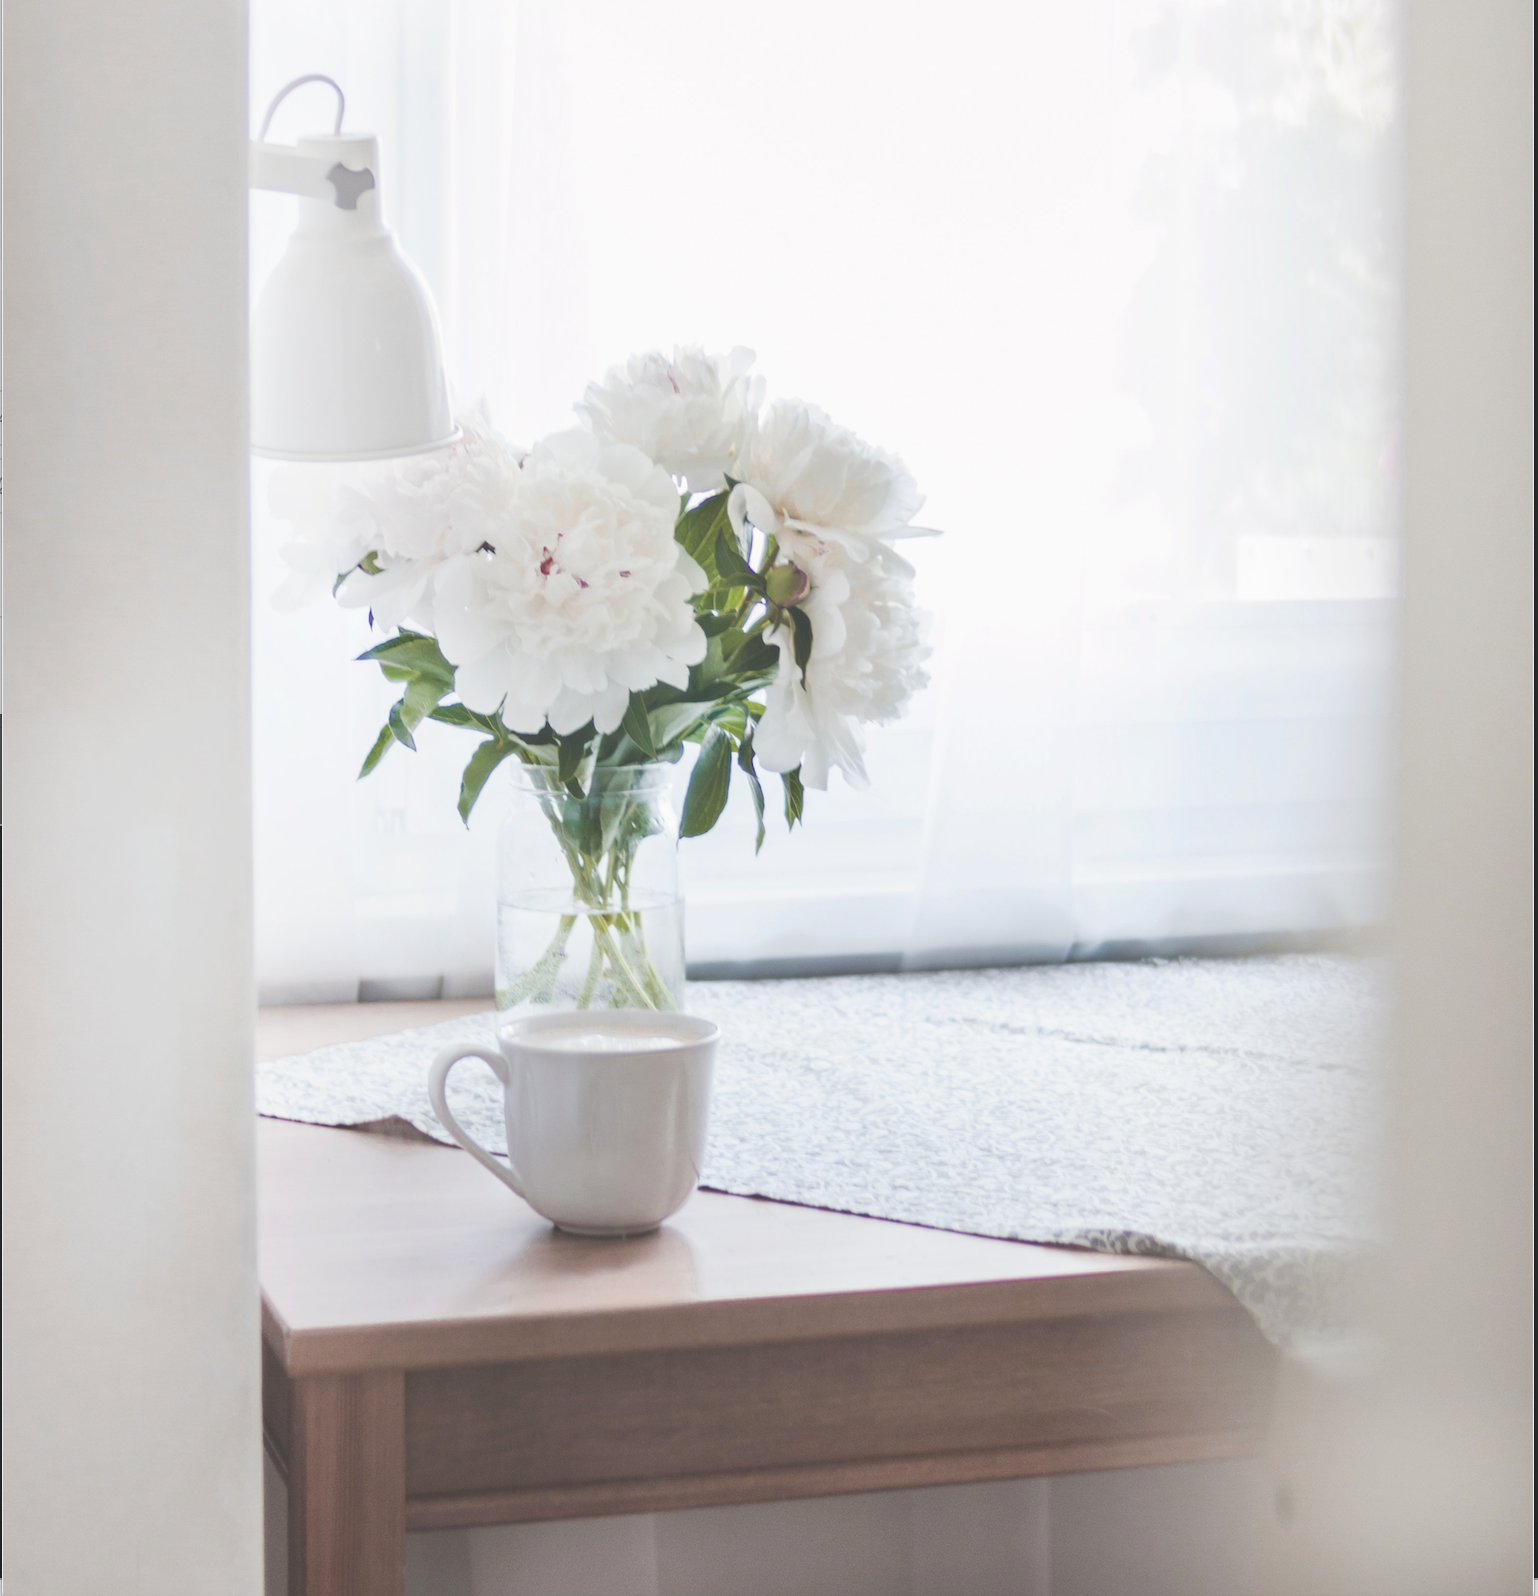 4 Maintenance Tips to Keep Your Home Humming for Spring